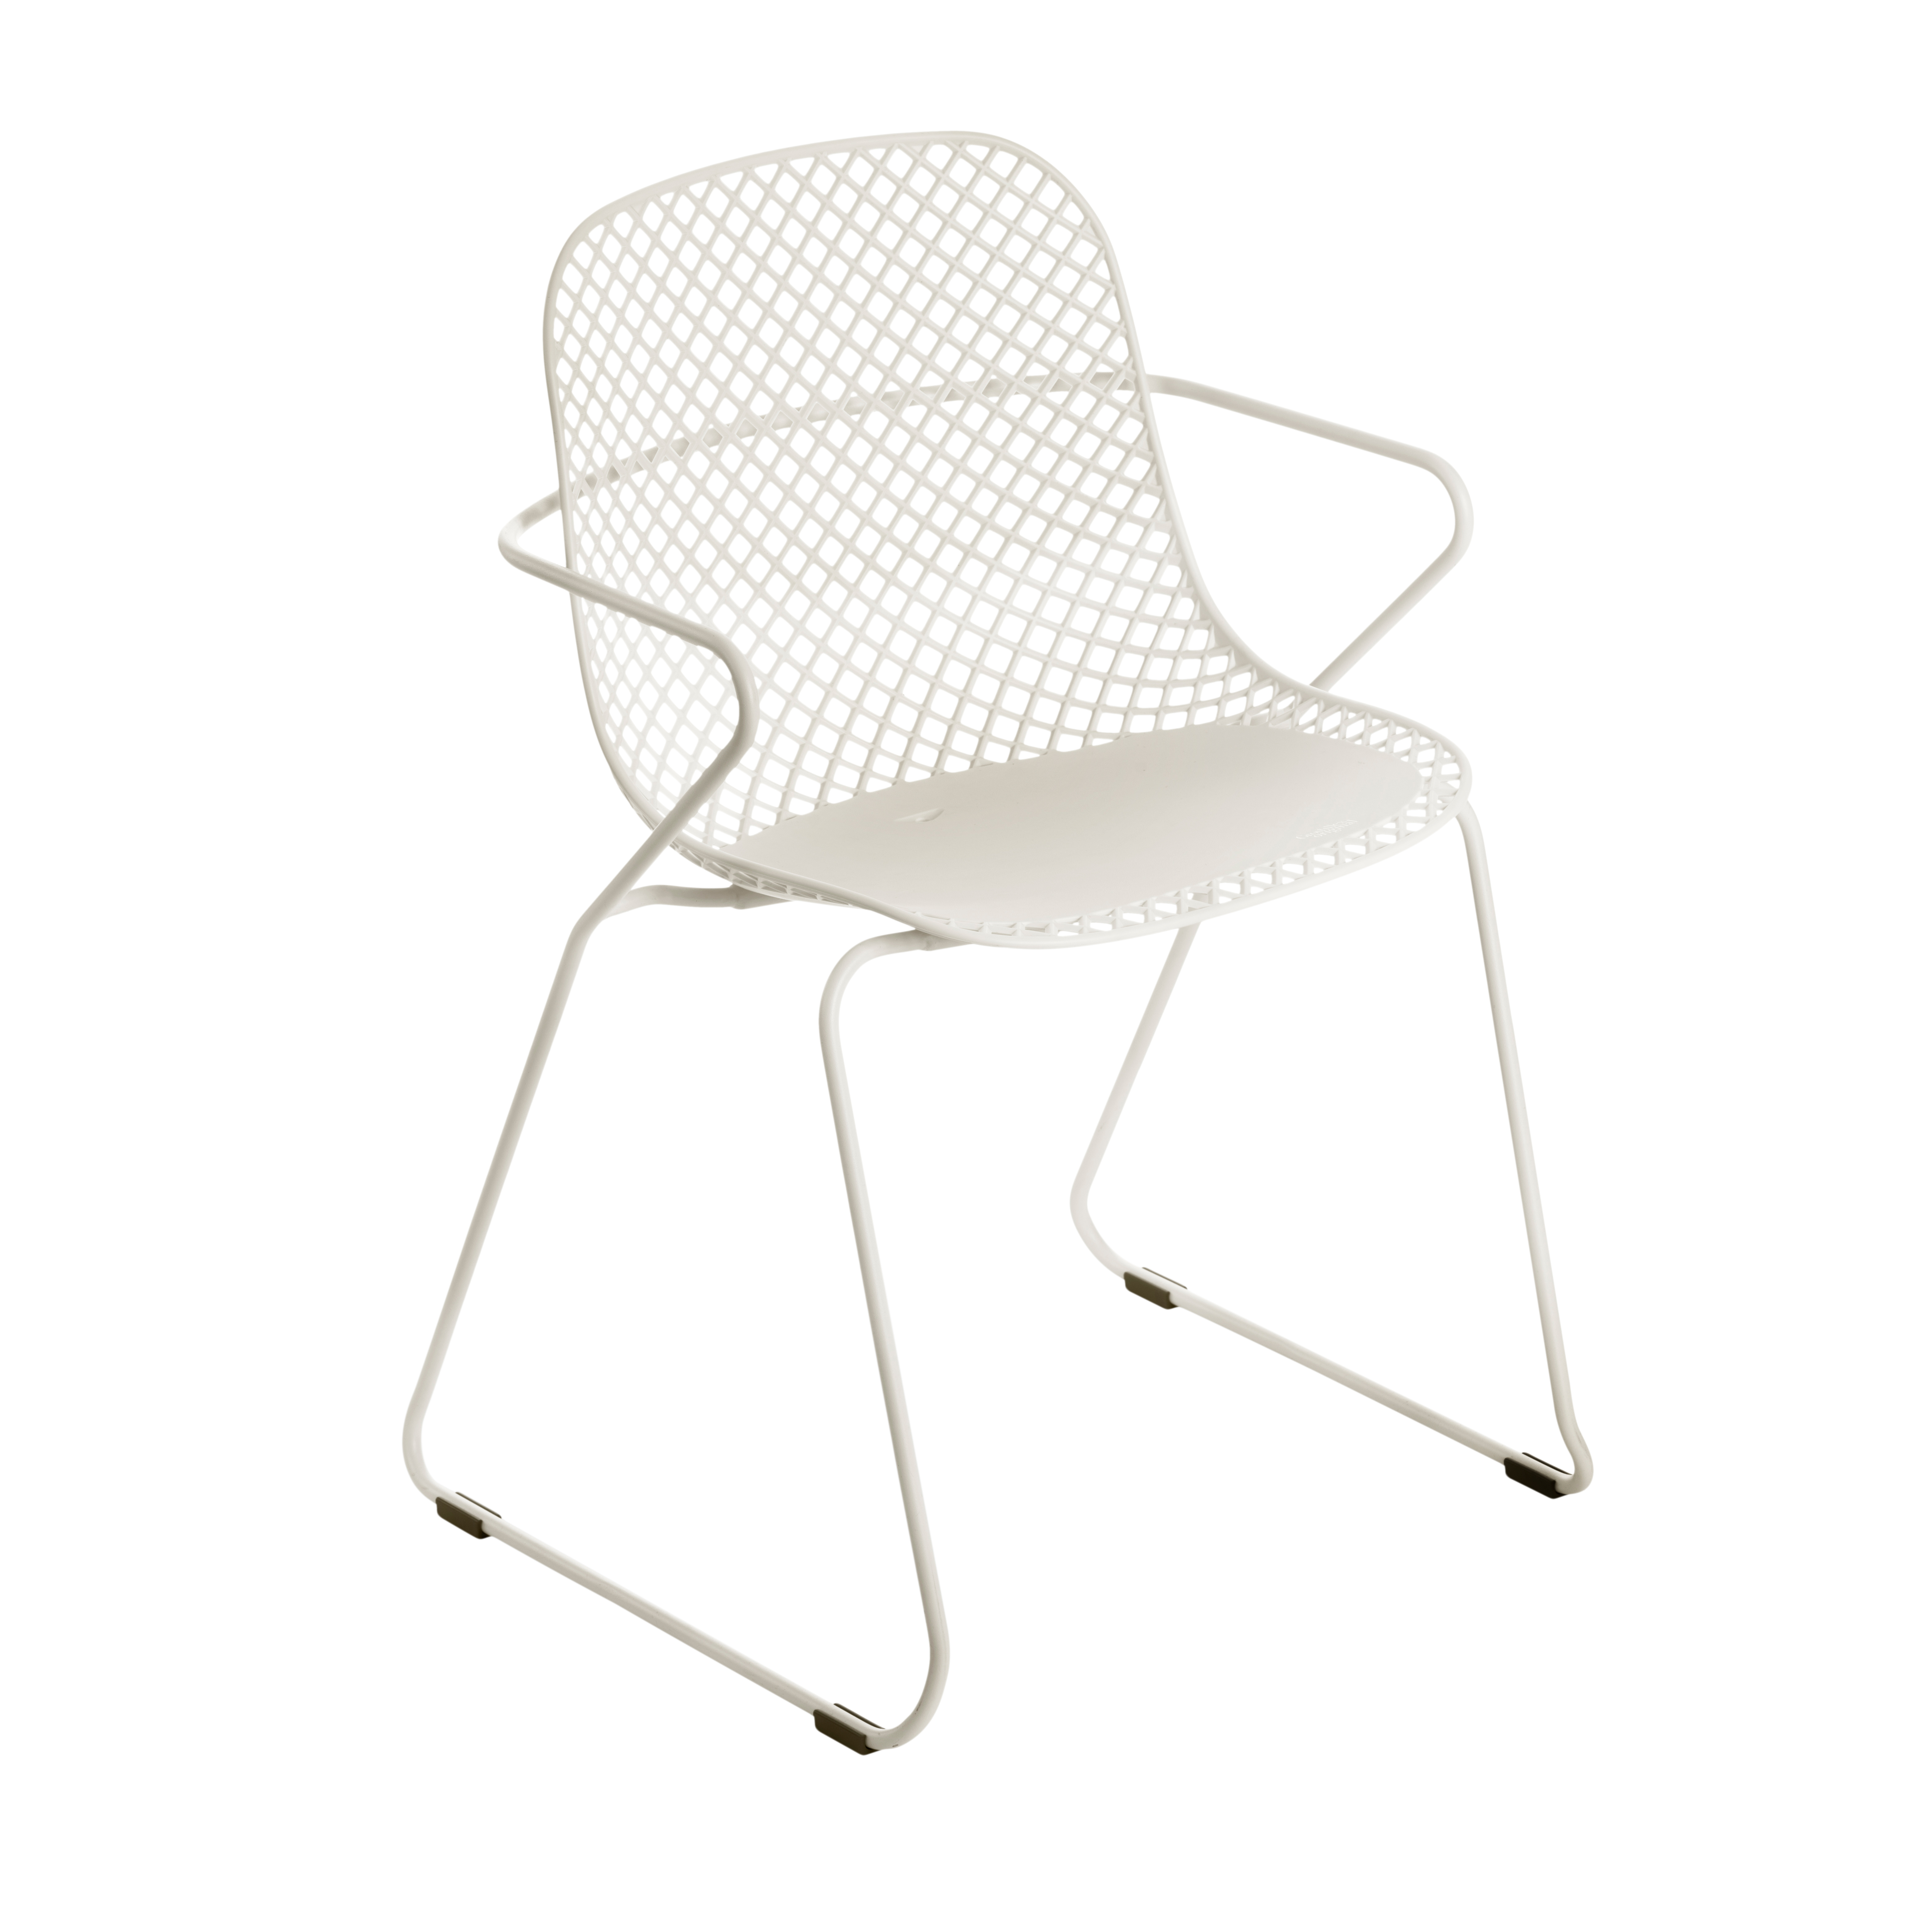 Grosfillex US137710 chair, armchair, stacking, outdoor